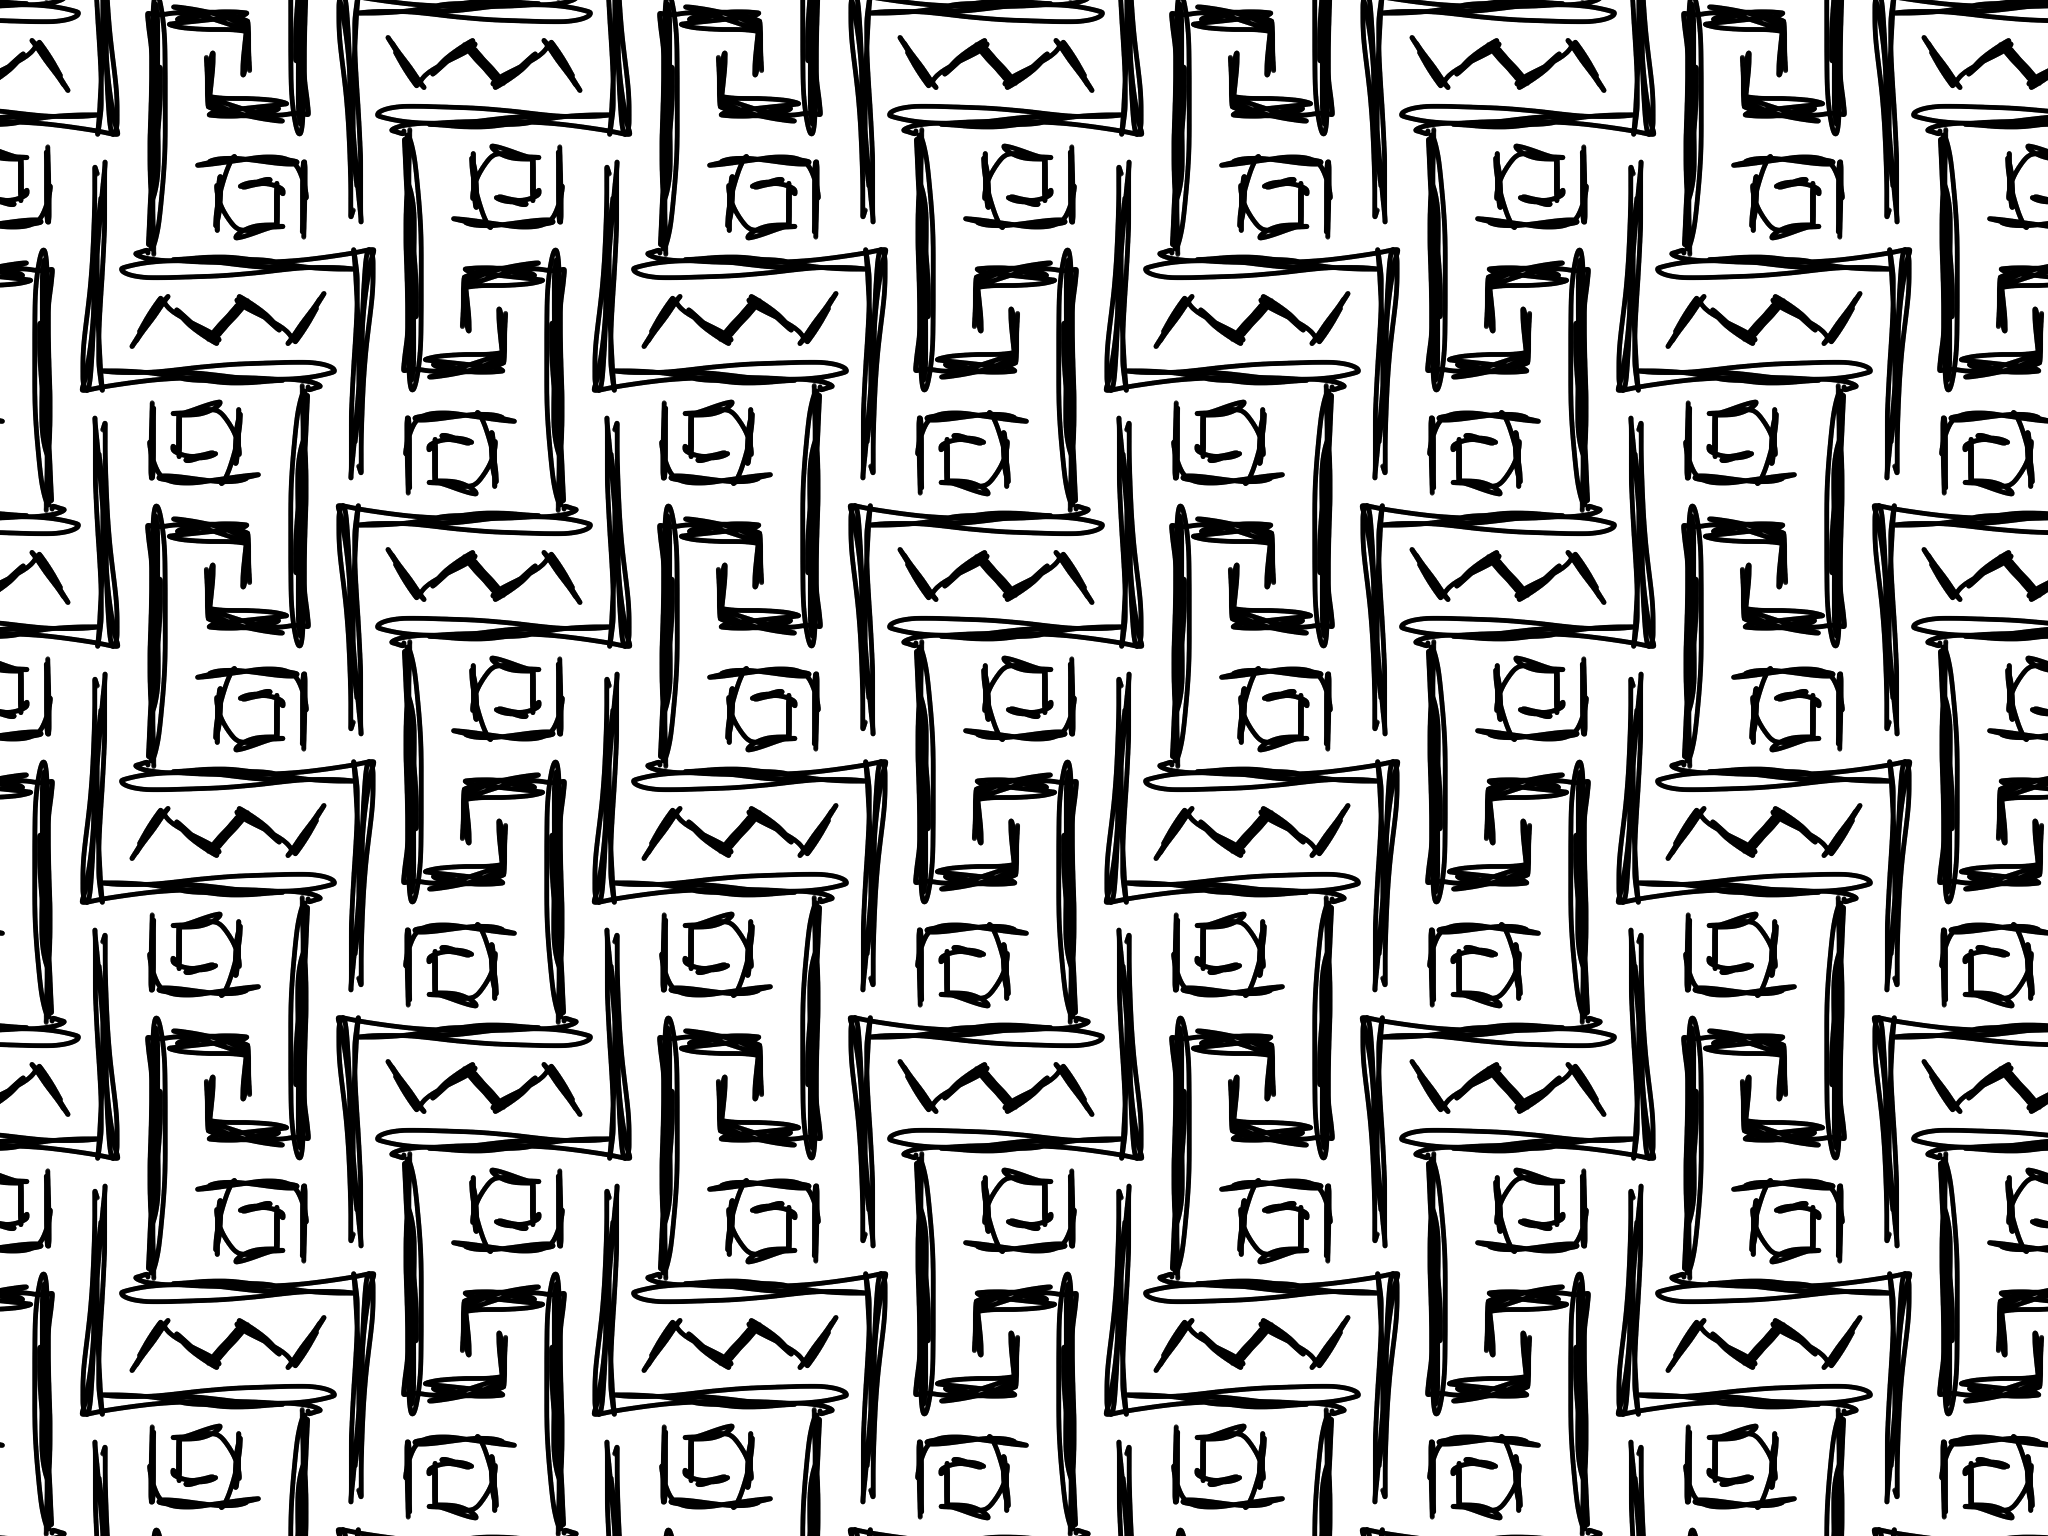 Transparent patterns png. Freebie commercial use seamless